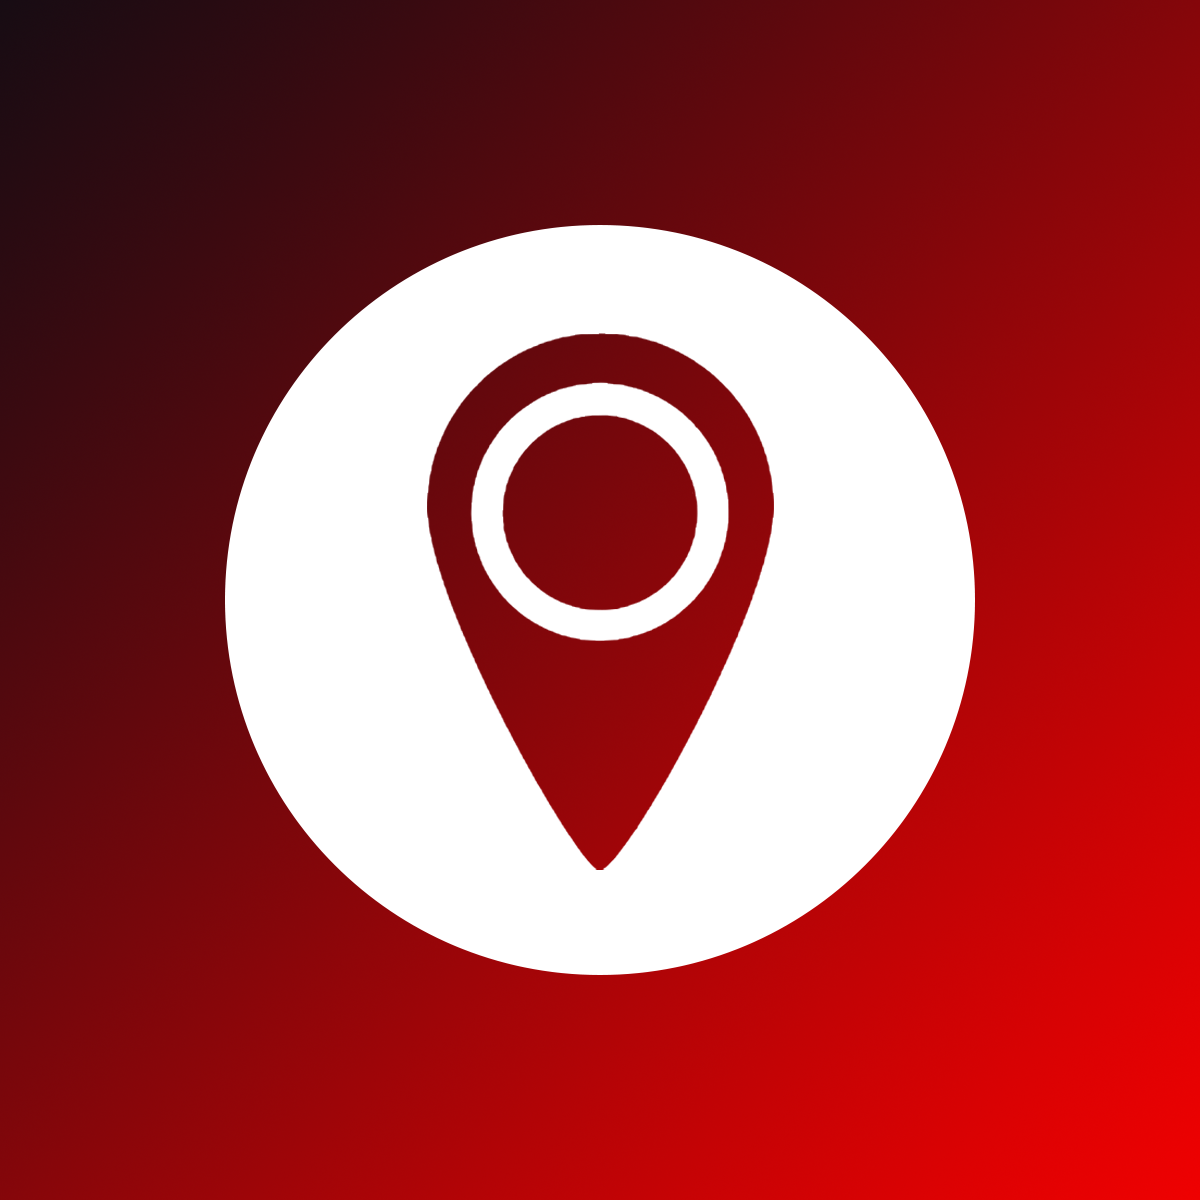 Store Locator | Custom Shopify Apps - W3trends, Inc.